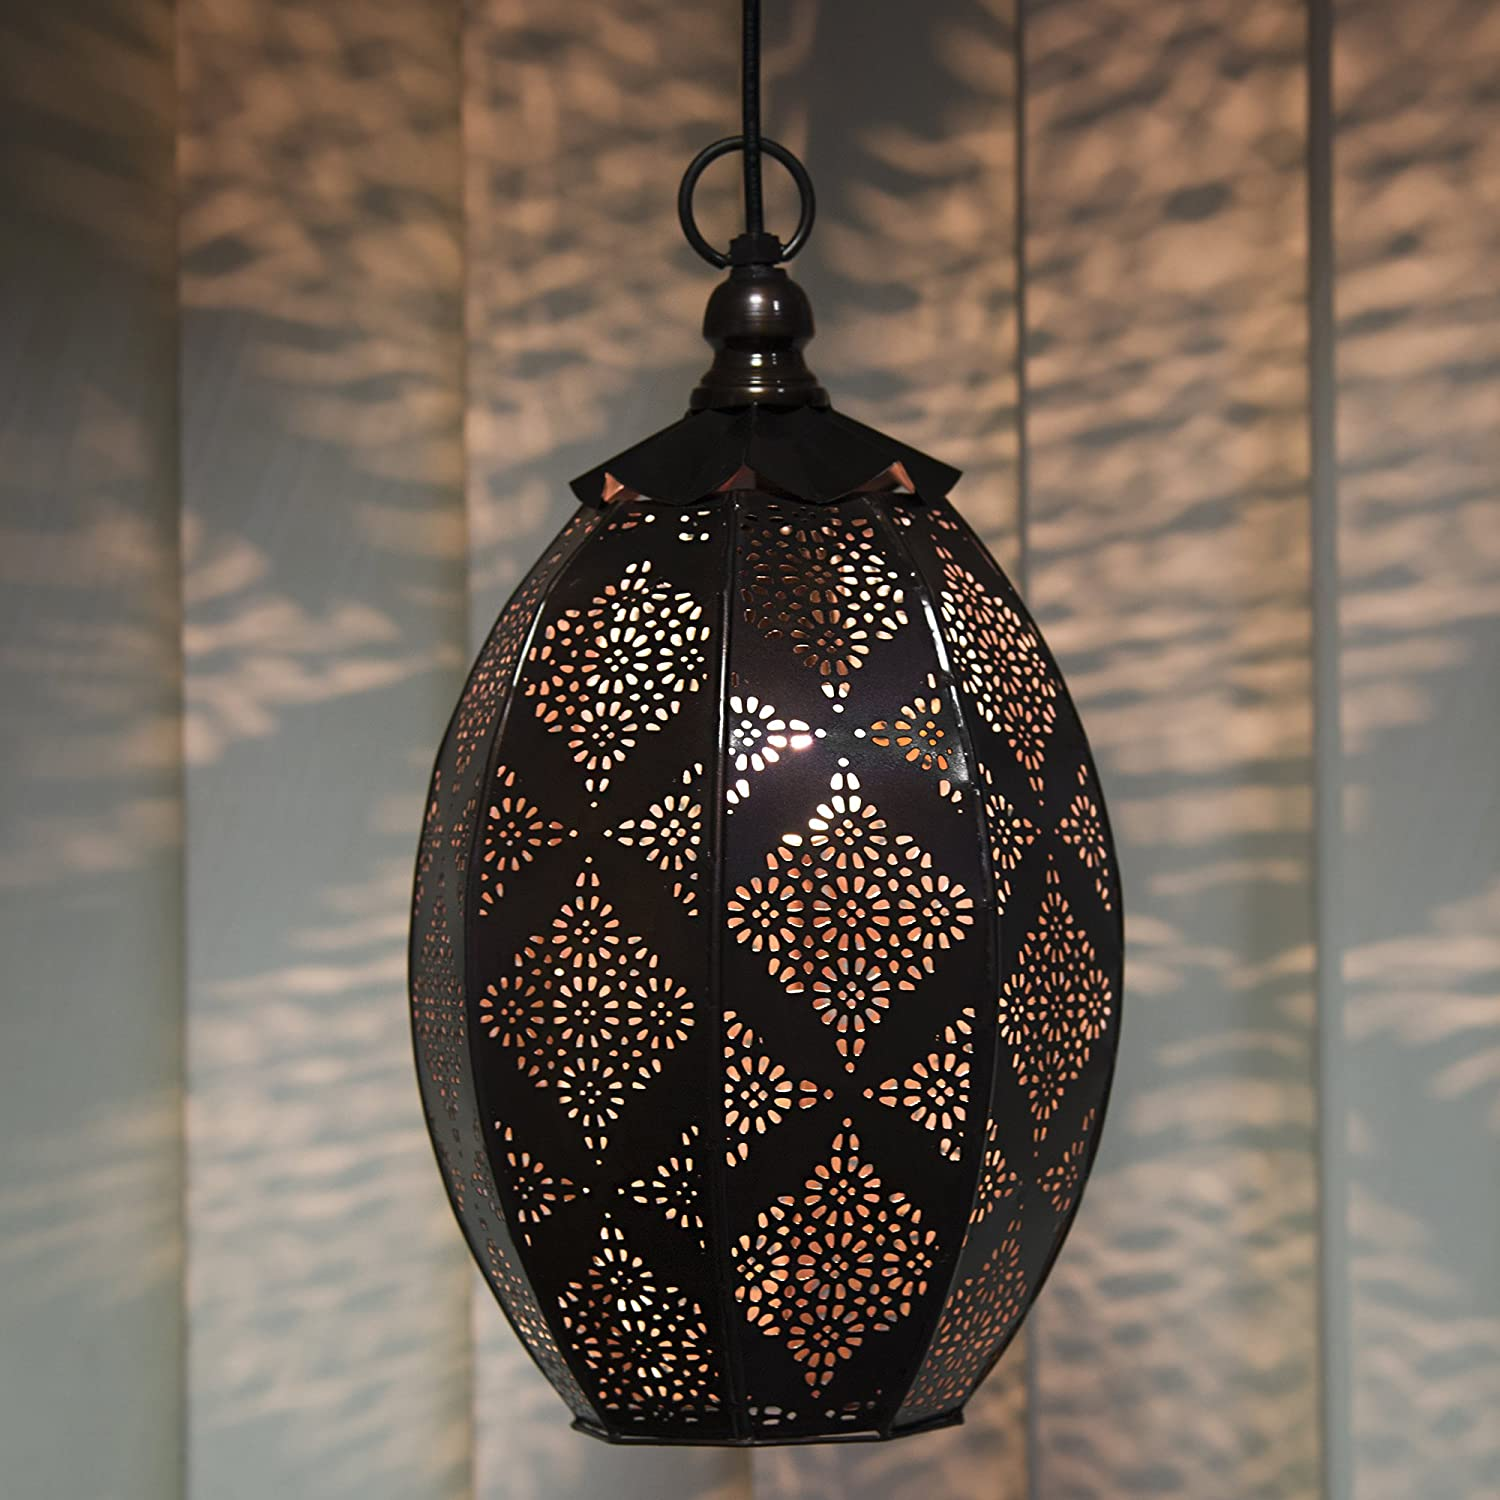 Buy Homesake Antique Oval Moroccan Pendant Light For Home Decoration Hanging Lamp Lights For Ceiling Jhumar Lighting For Home Vintage Wall Hanging Decorative Items For Living Room Bedroom Home Decor Items